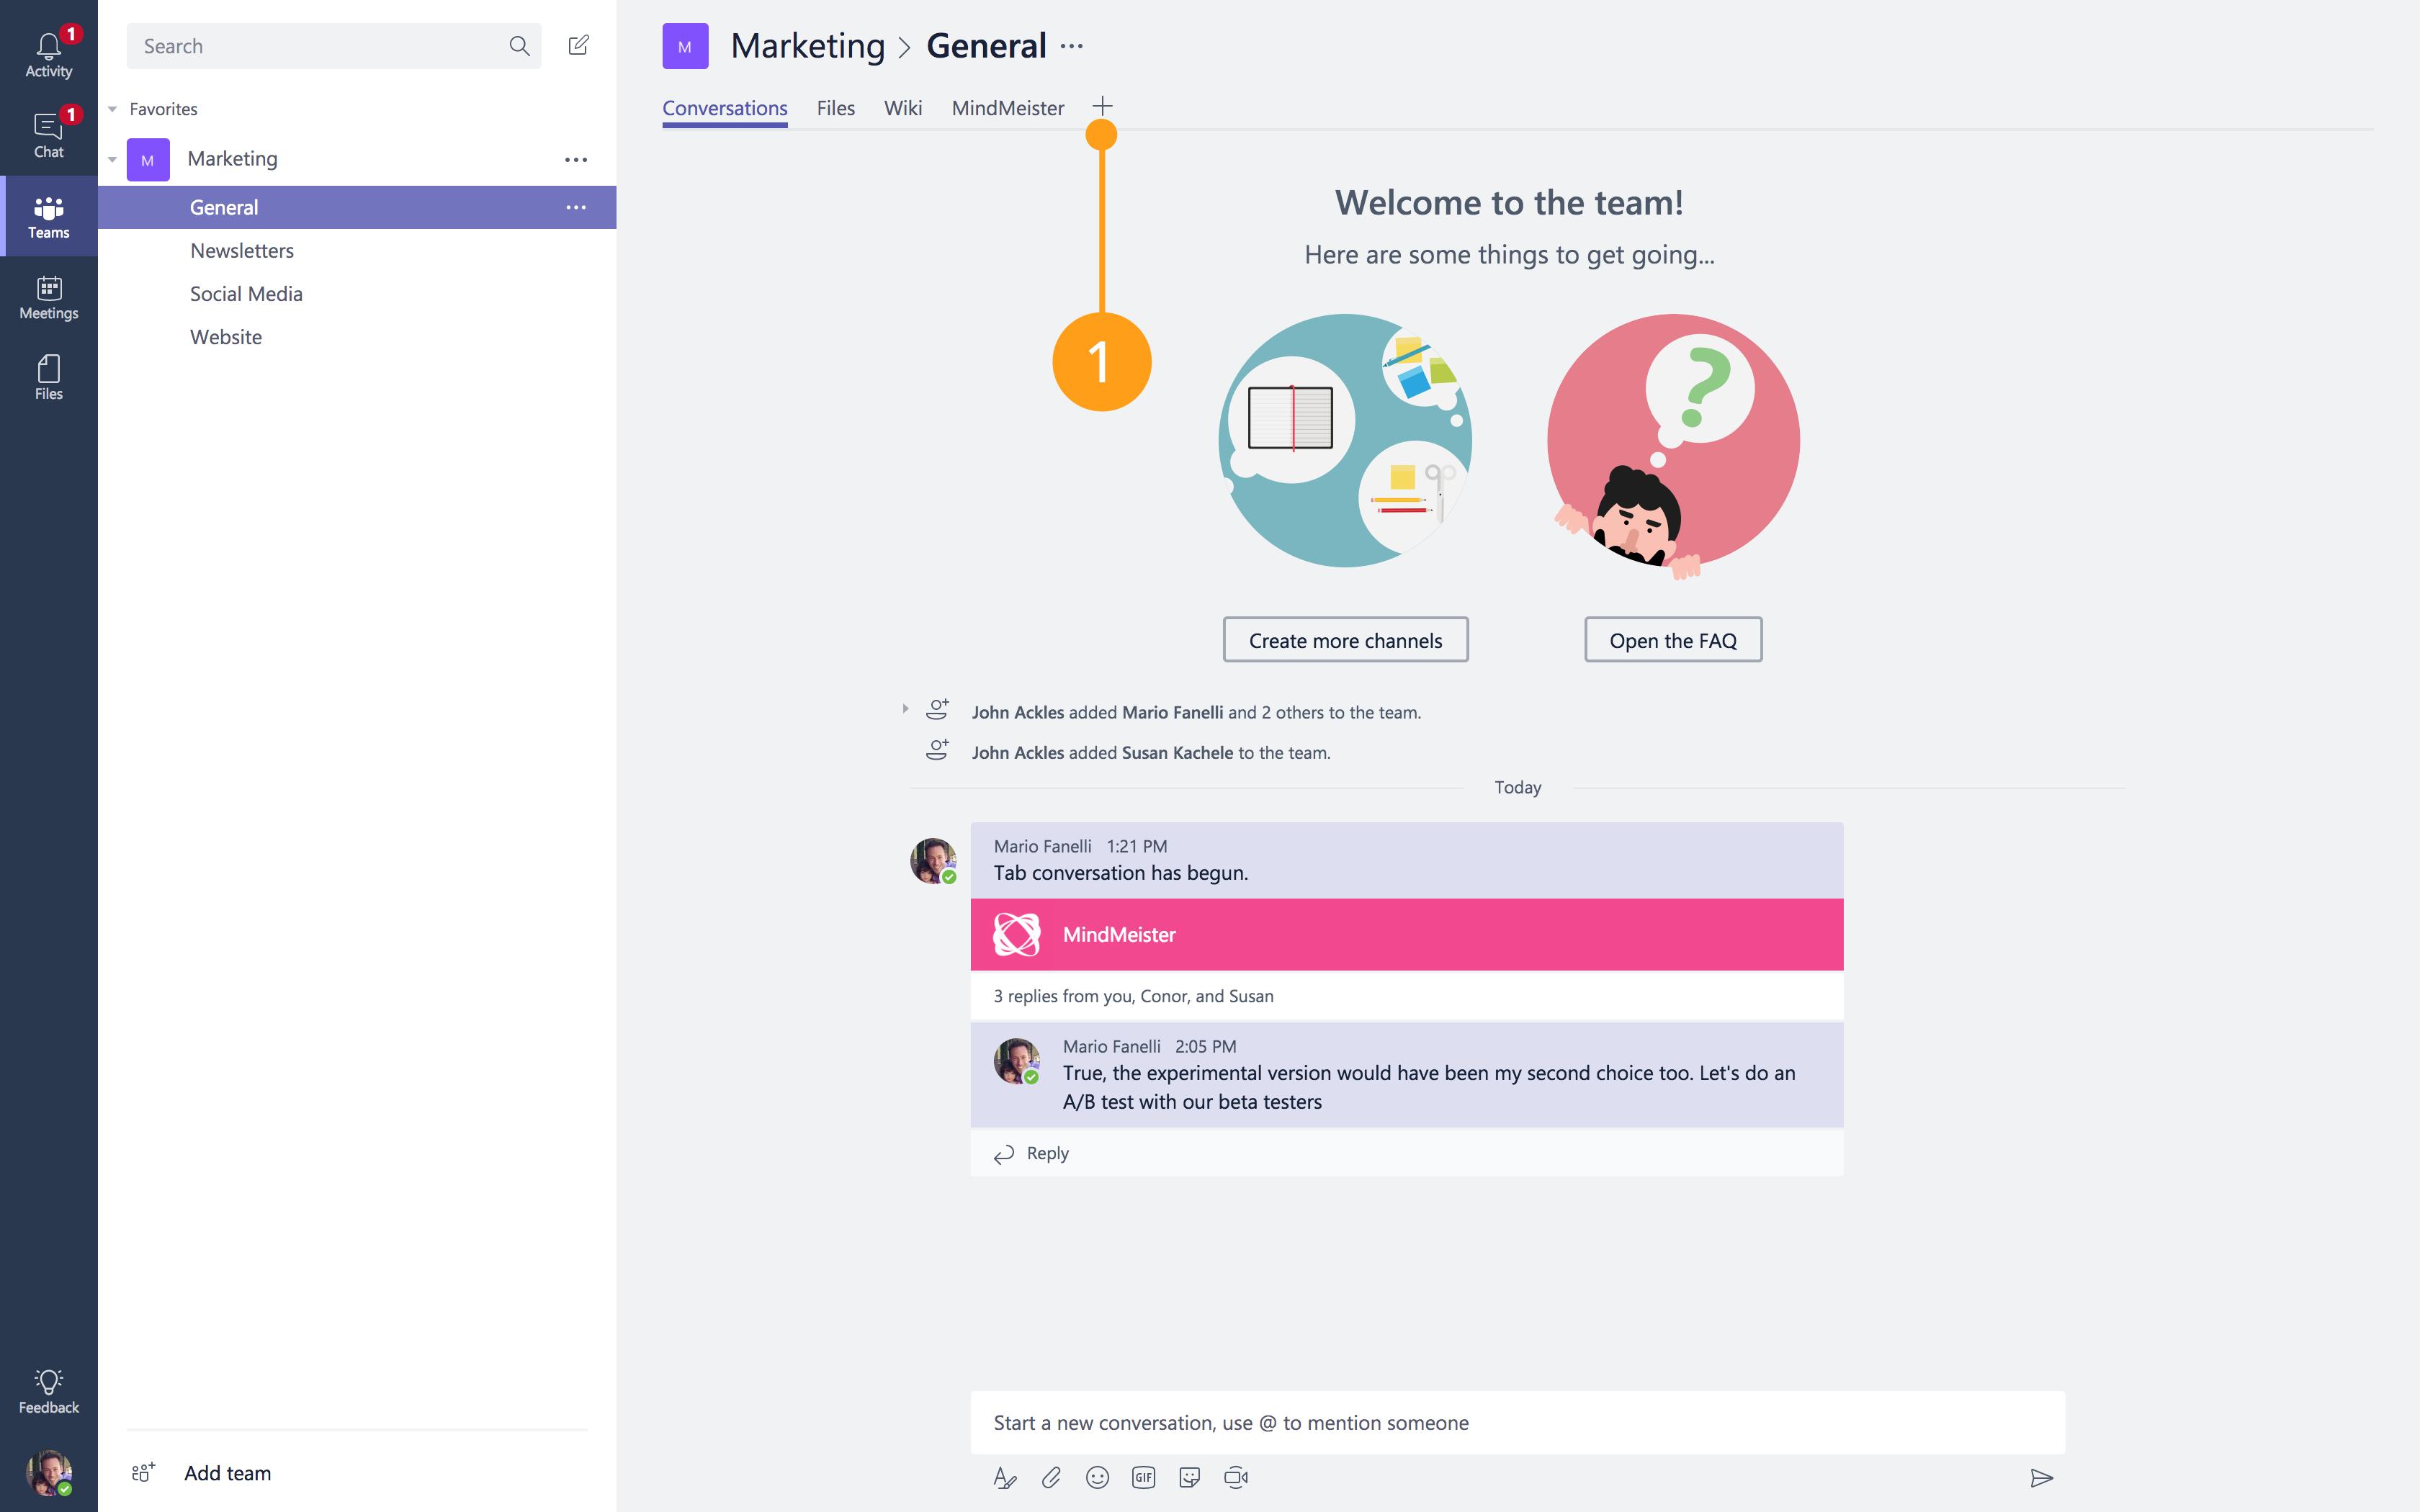 Microsoft Teams Integration – MindMeister Help